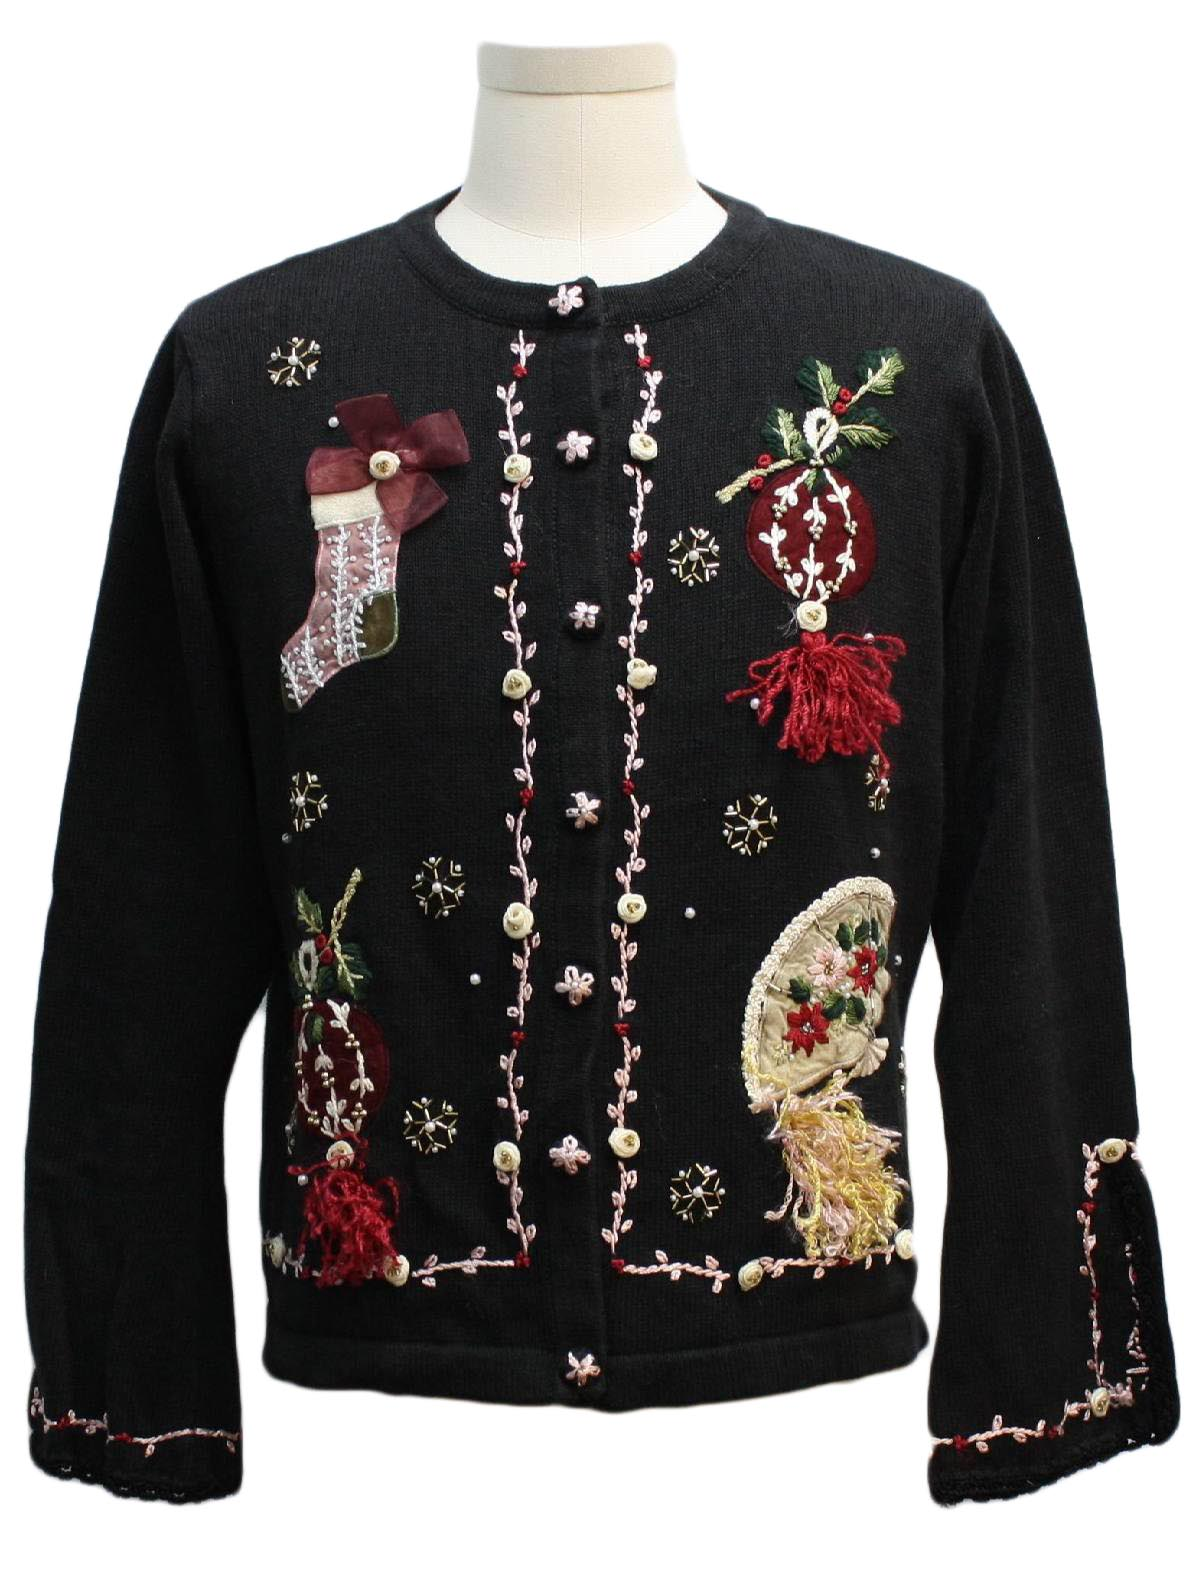 Womens Ugly Christmas Sweater: -Victoria Jones- Womens ...